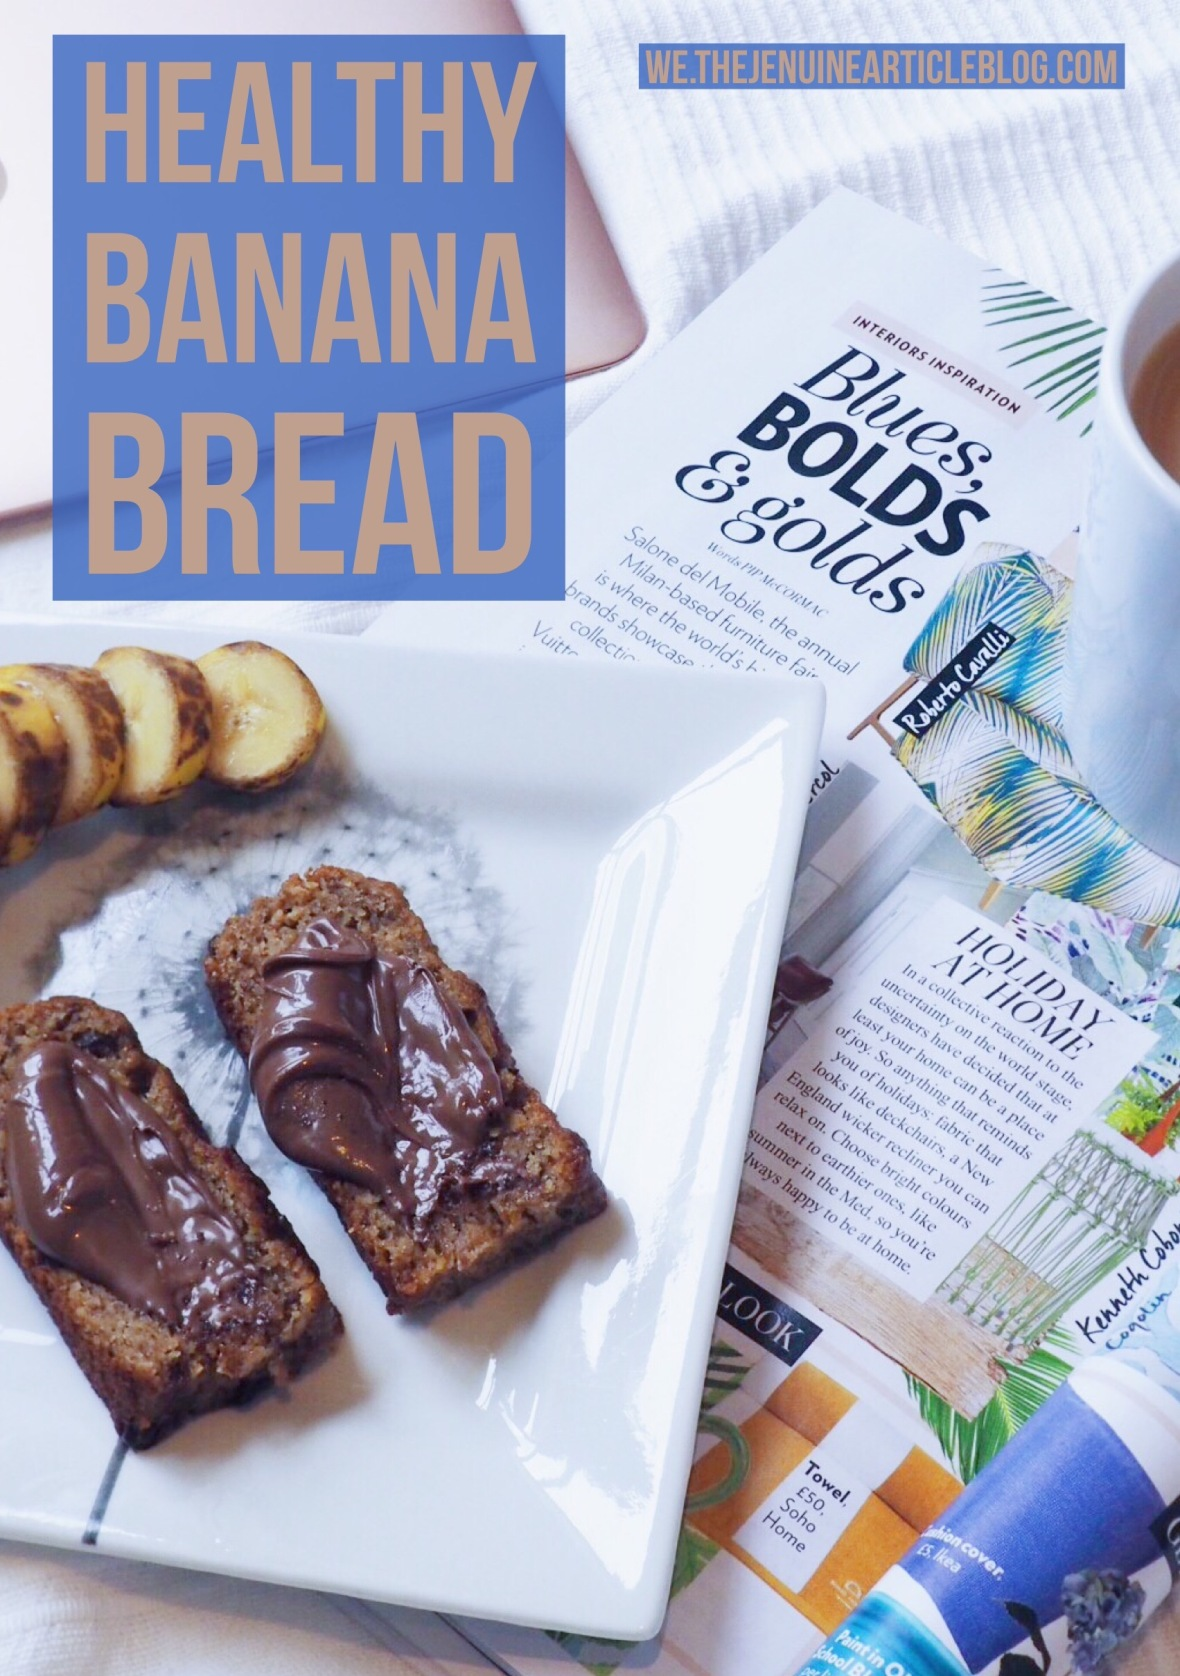 Comforting, indulgent, delicious and good for you. This banana bread is the perfect guilt-free pick me up. Better yet, it's easy to make. Perfect for sharing with a friend or as a perfect accompaniment to a Netflix binge.